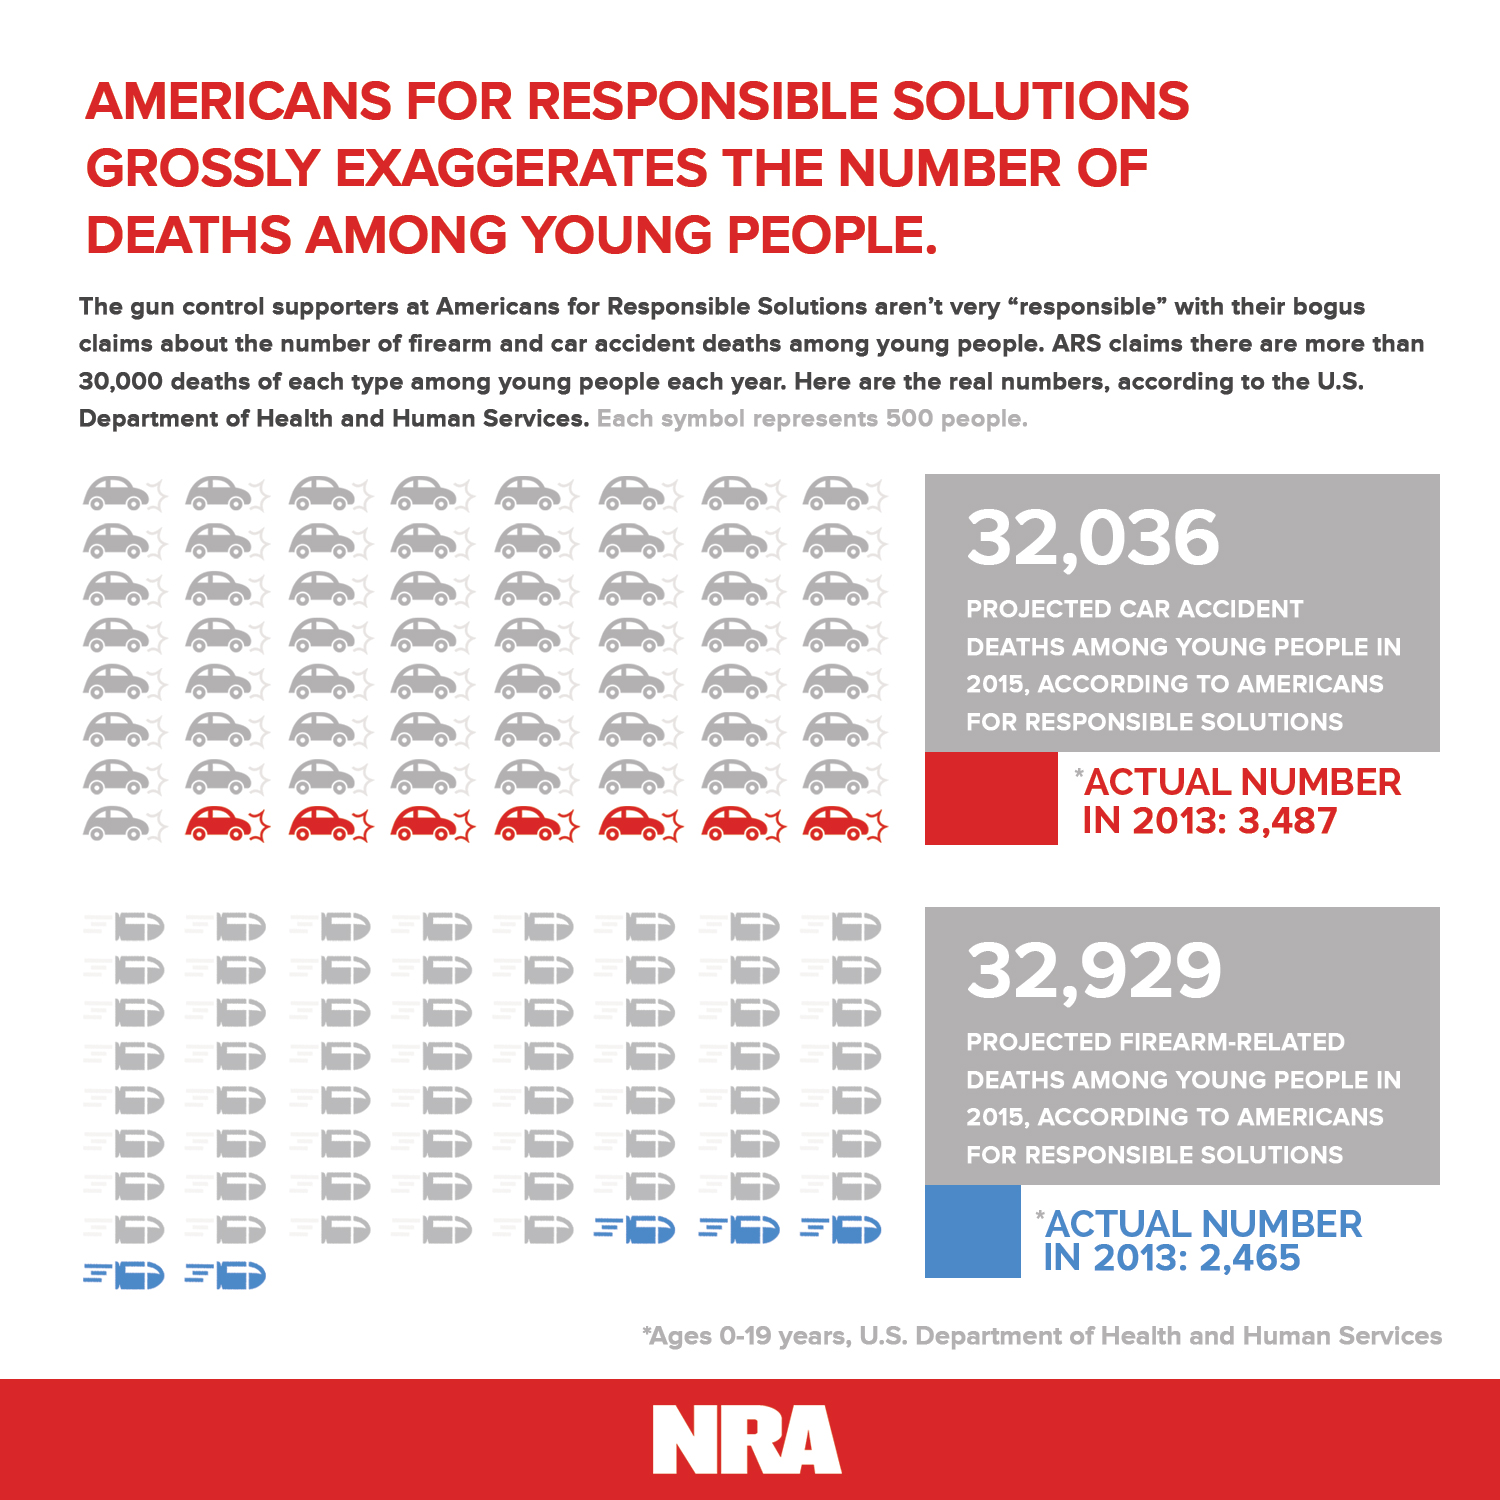 a solution to gun control Gun control solutions entail instituting bans, closing loopholes that make it easy to buy guns, universal background checks, and greater access to mental health care many people confuse gun control with losing second amendment rights, but a mandatory buyback program can work wonders.